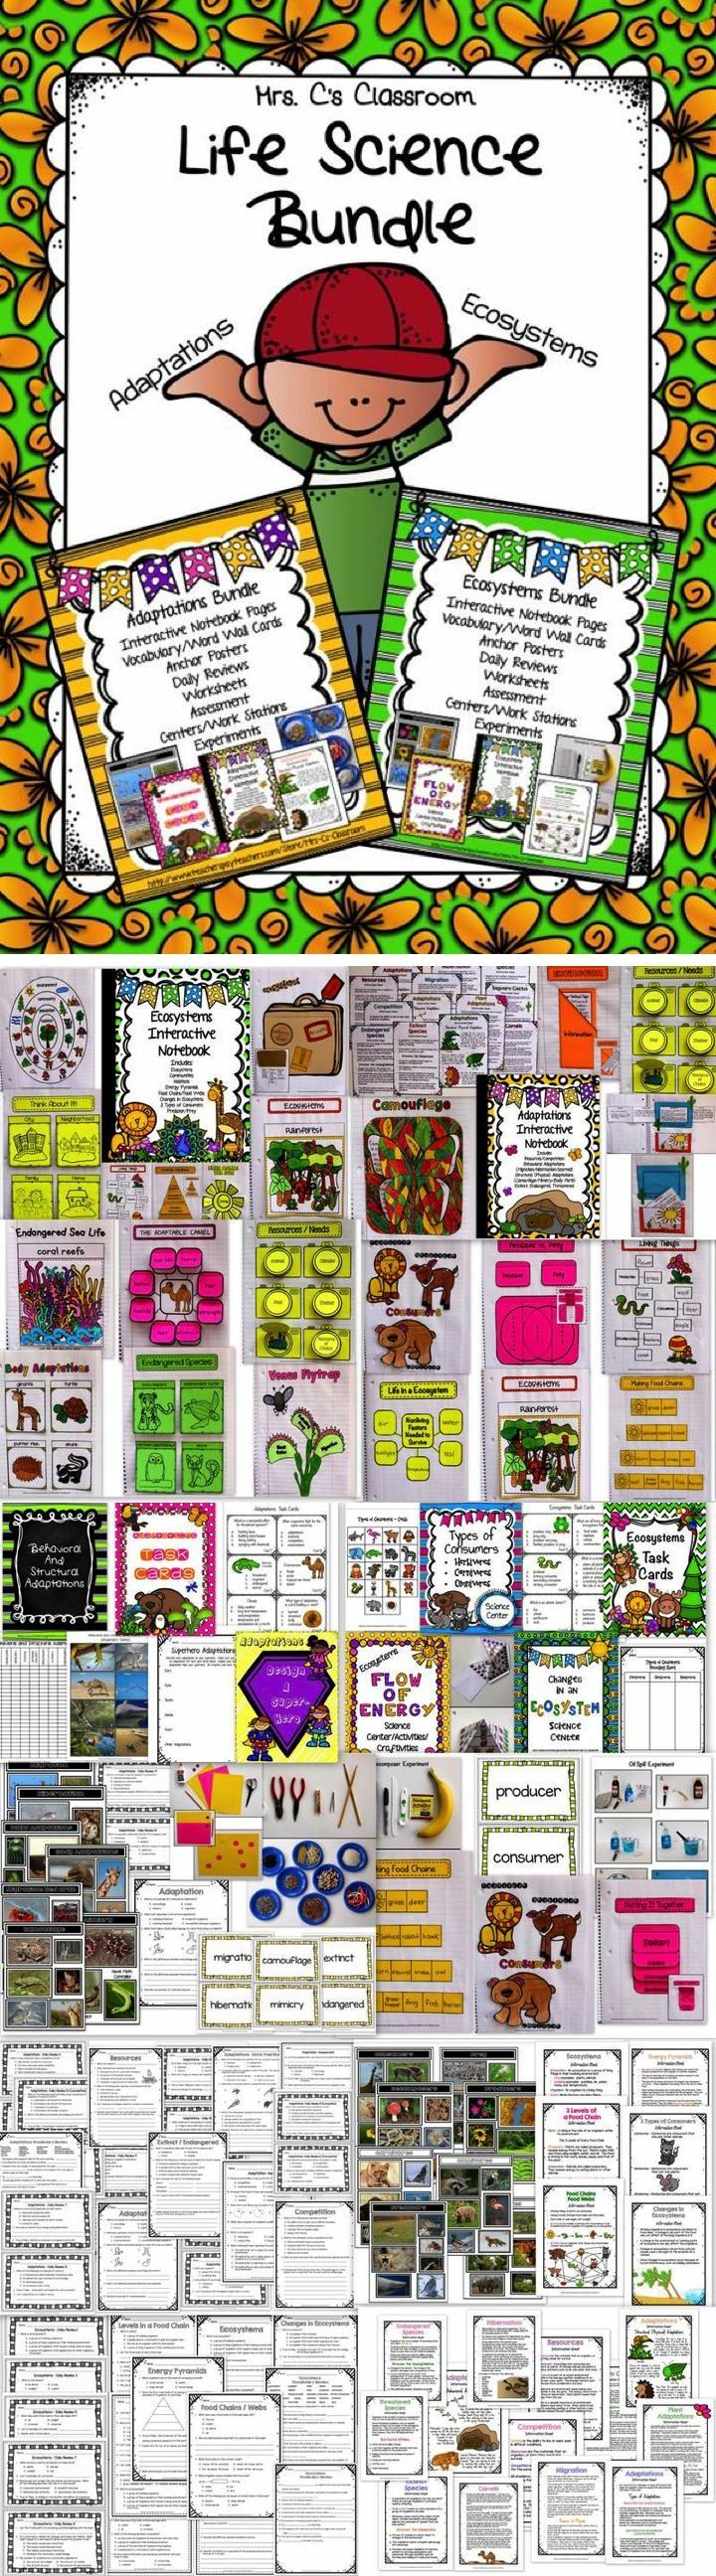 LIFE SCIENCE BUNDLE!   GREAT VALUE! My two life science unit bundles, ADAPTATIONS and ECOSYSTEMS are combined to create this huge bundle.  It includes practically everything you need to teach both units.   Included are interactive notebooks (with information anchor posters to match the teacher's posters), experiments, science centers/work stations, daily reviews, anchor posters, real-life picture examples, worksheets, pre/post assessments, and vocabulary word walls.